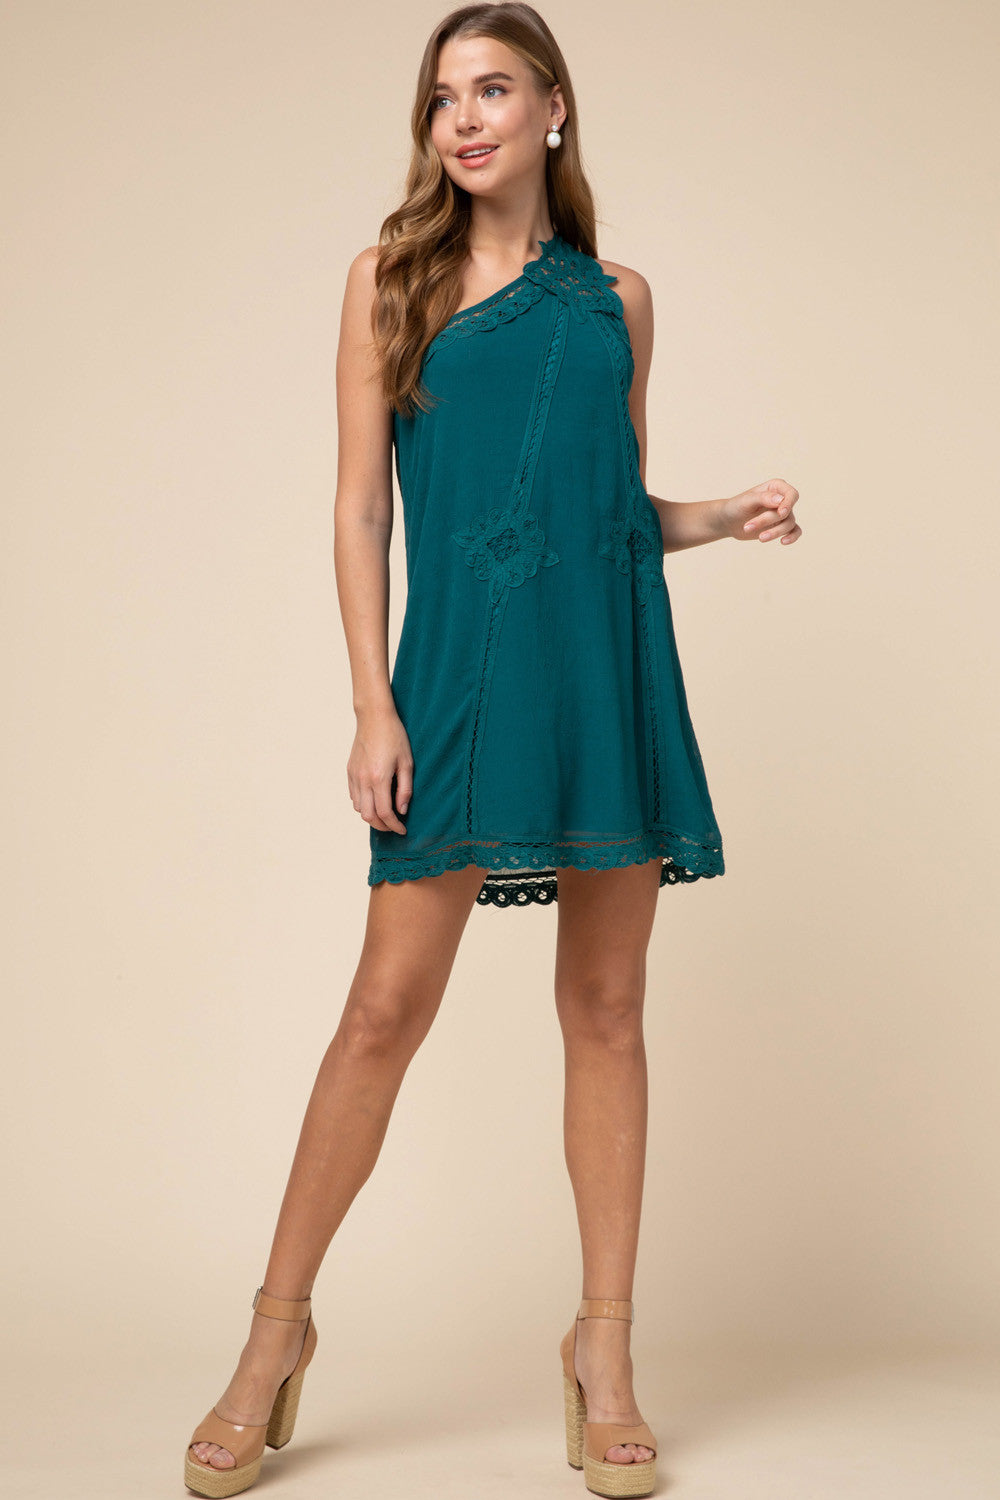 One-shoulder dress featuring crochet lace trim detail